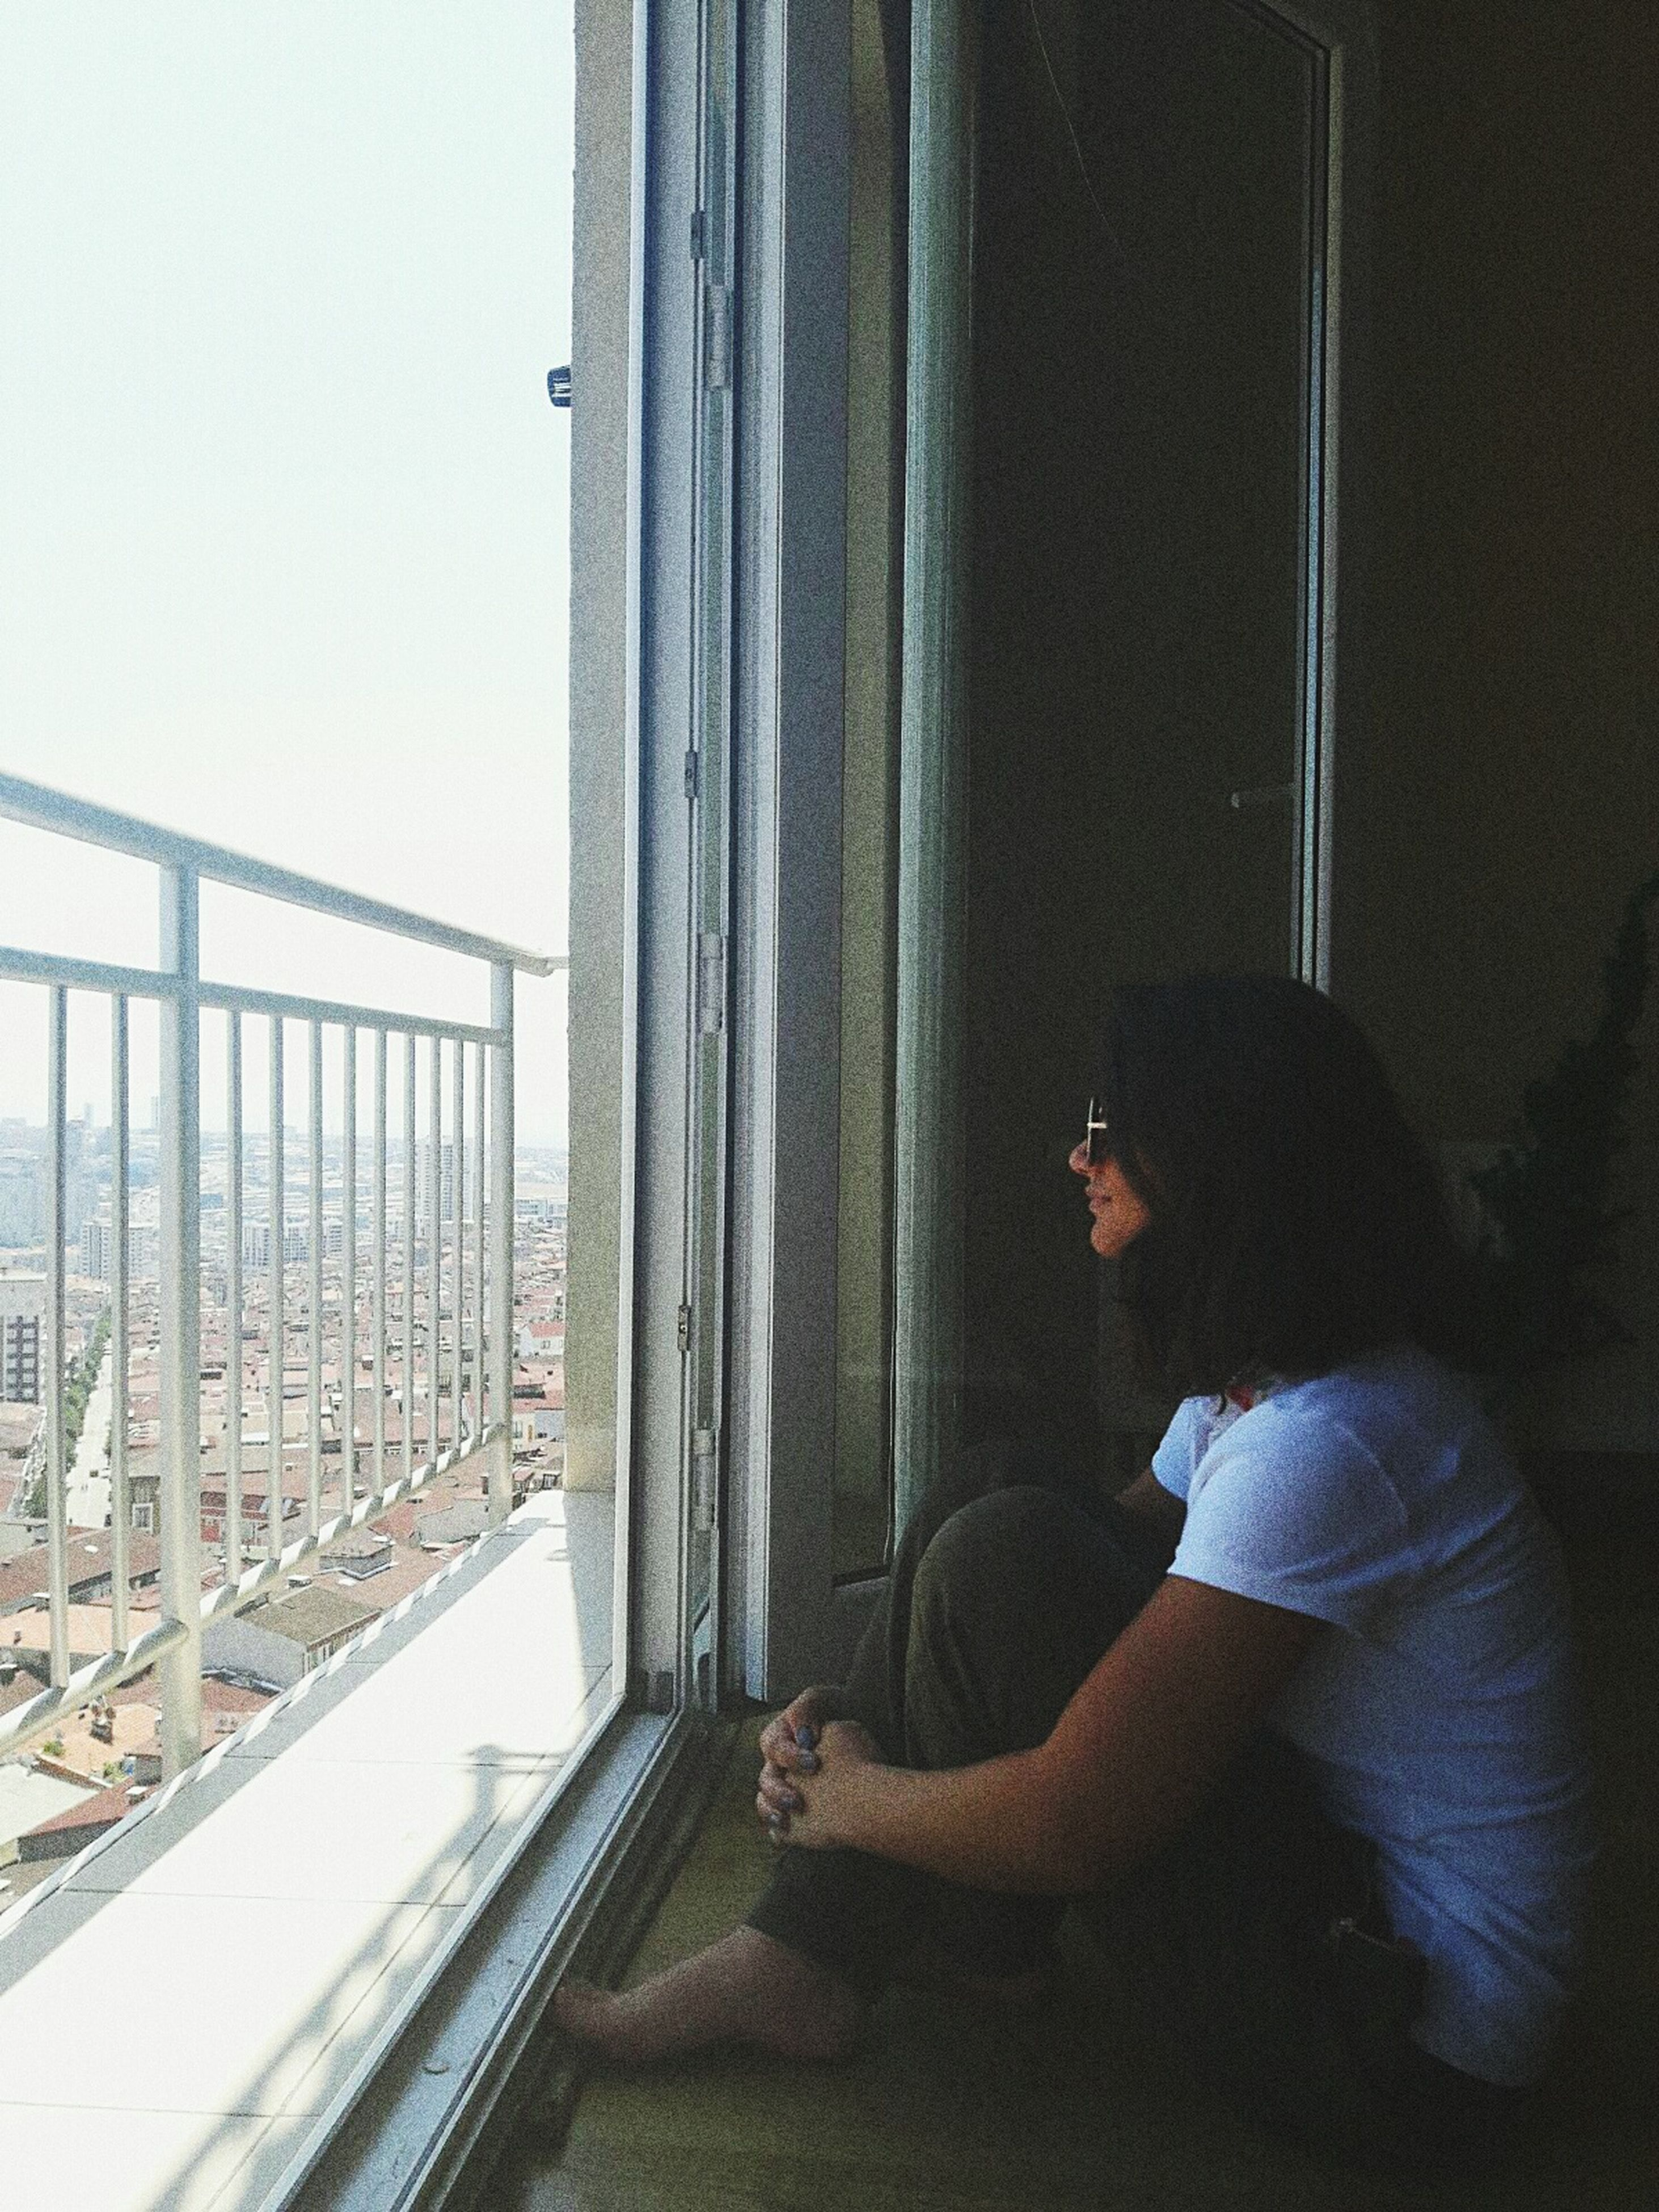 window, real people, looking through window, one person, young adult, indoors, side view, lifestyles, day, young women, architecture, built structure, sitting, technology, sky